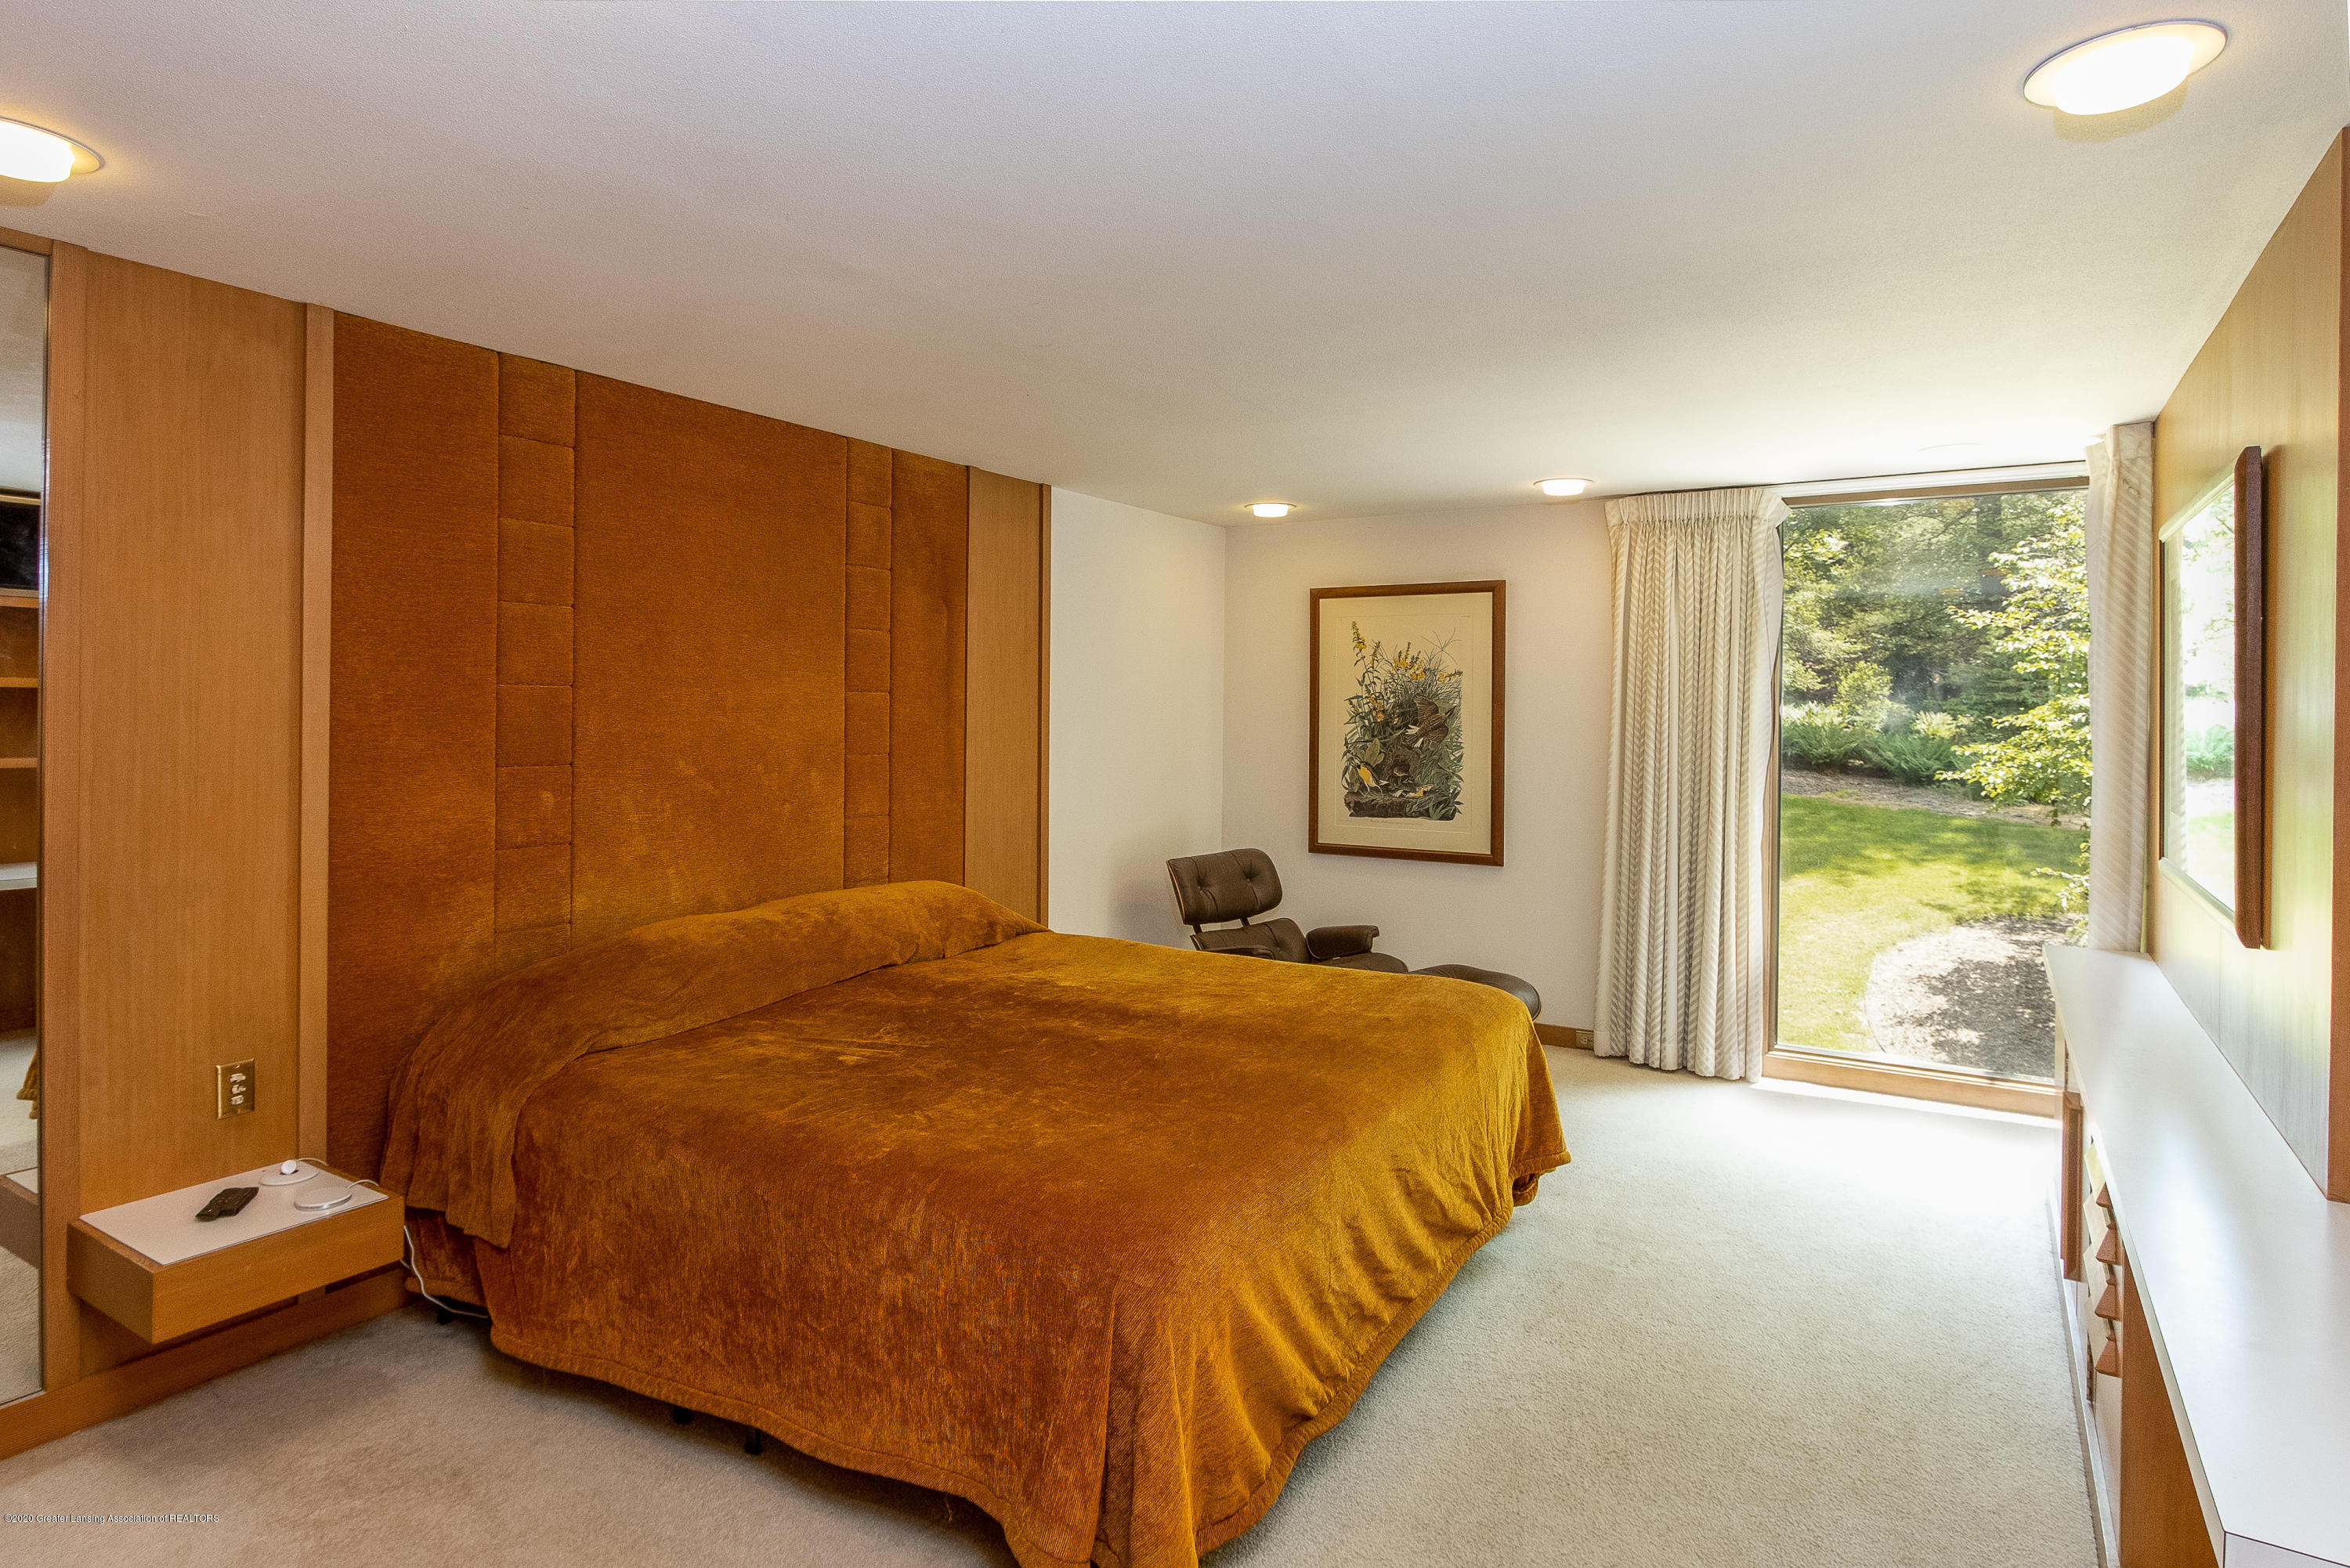 1172 Wrightwind Dr - Master Bedroom - 43